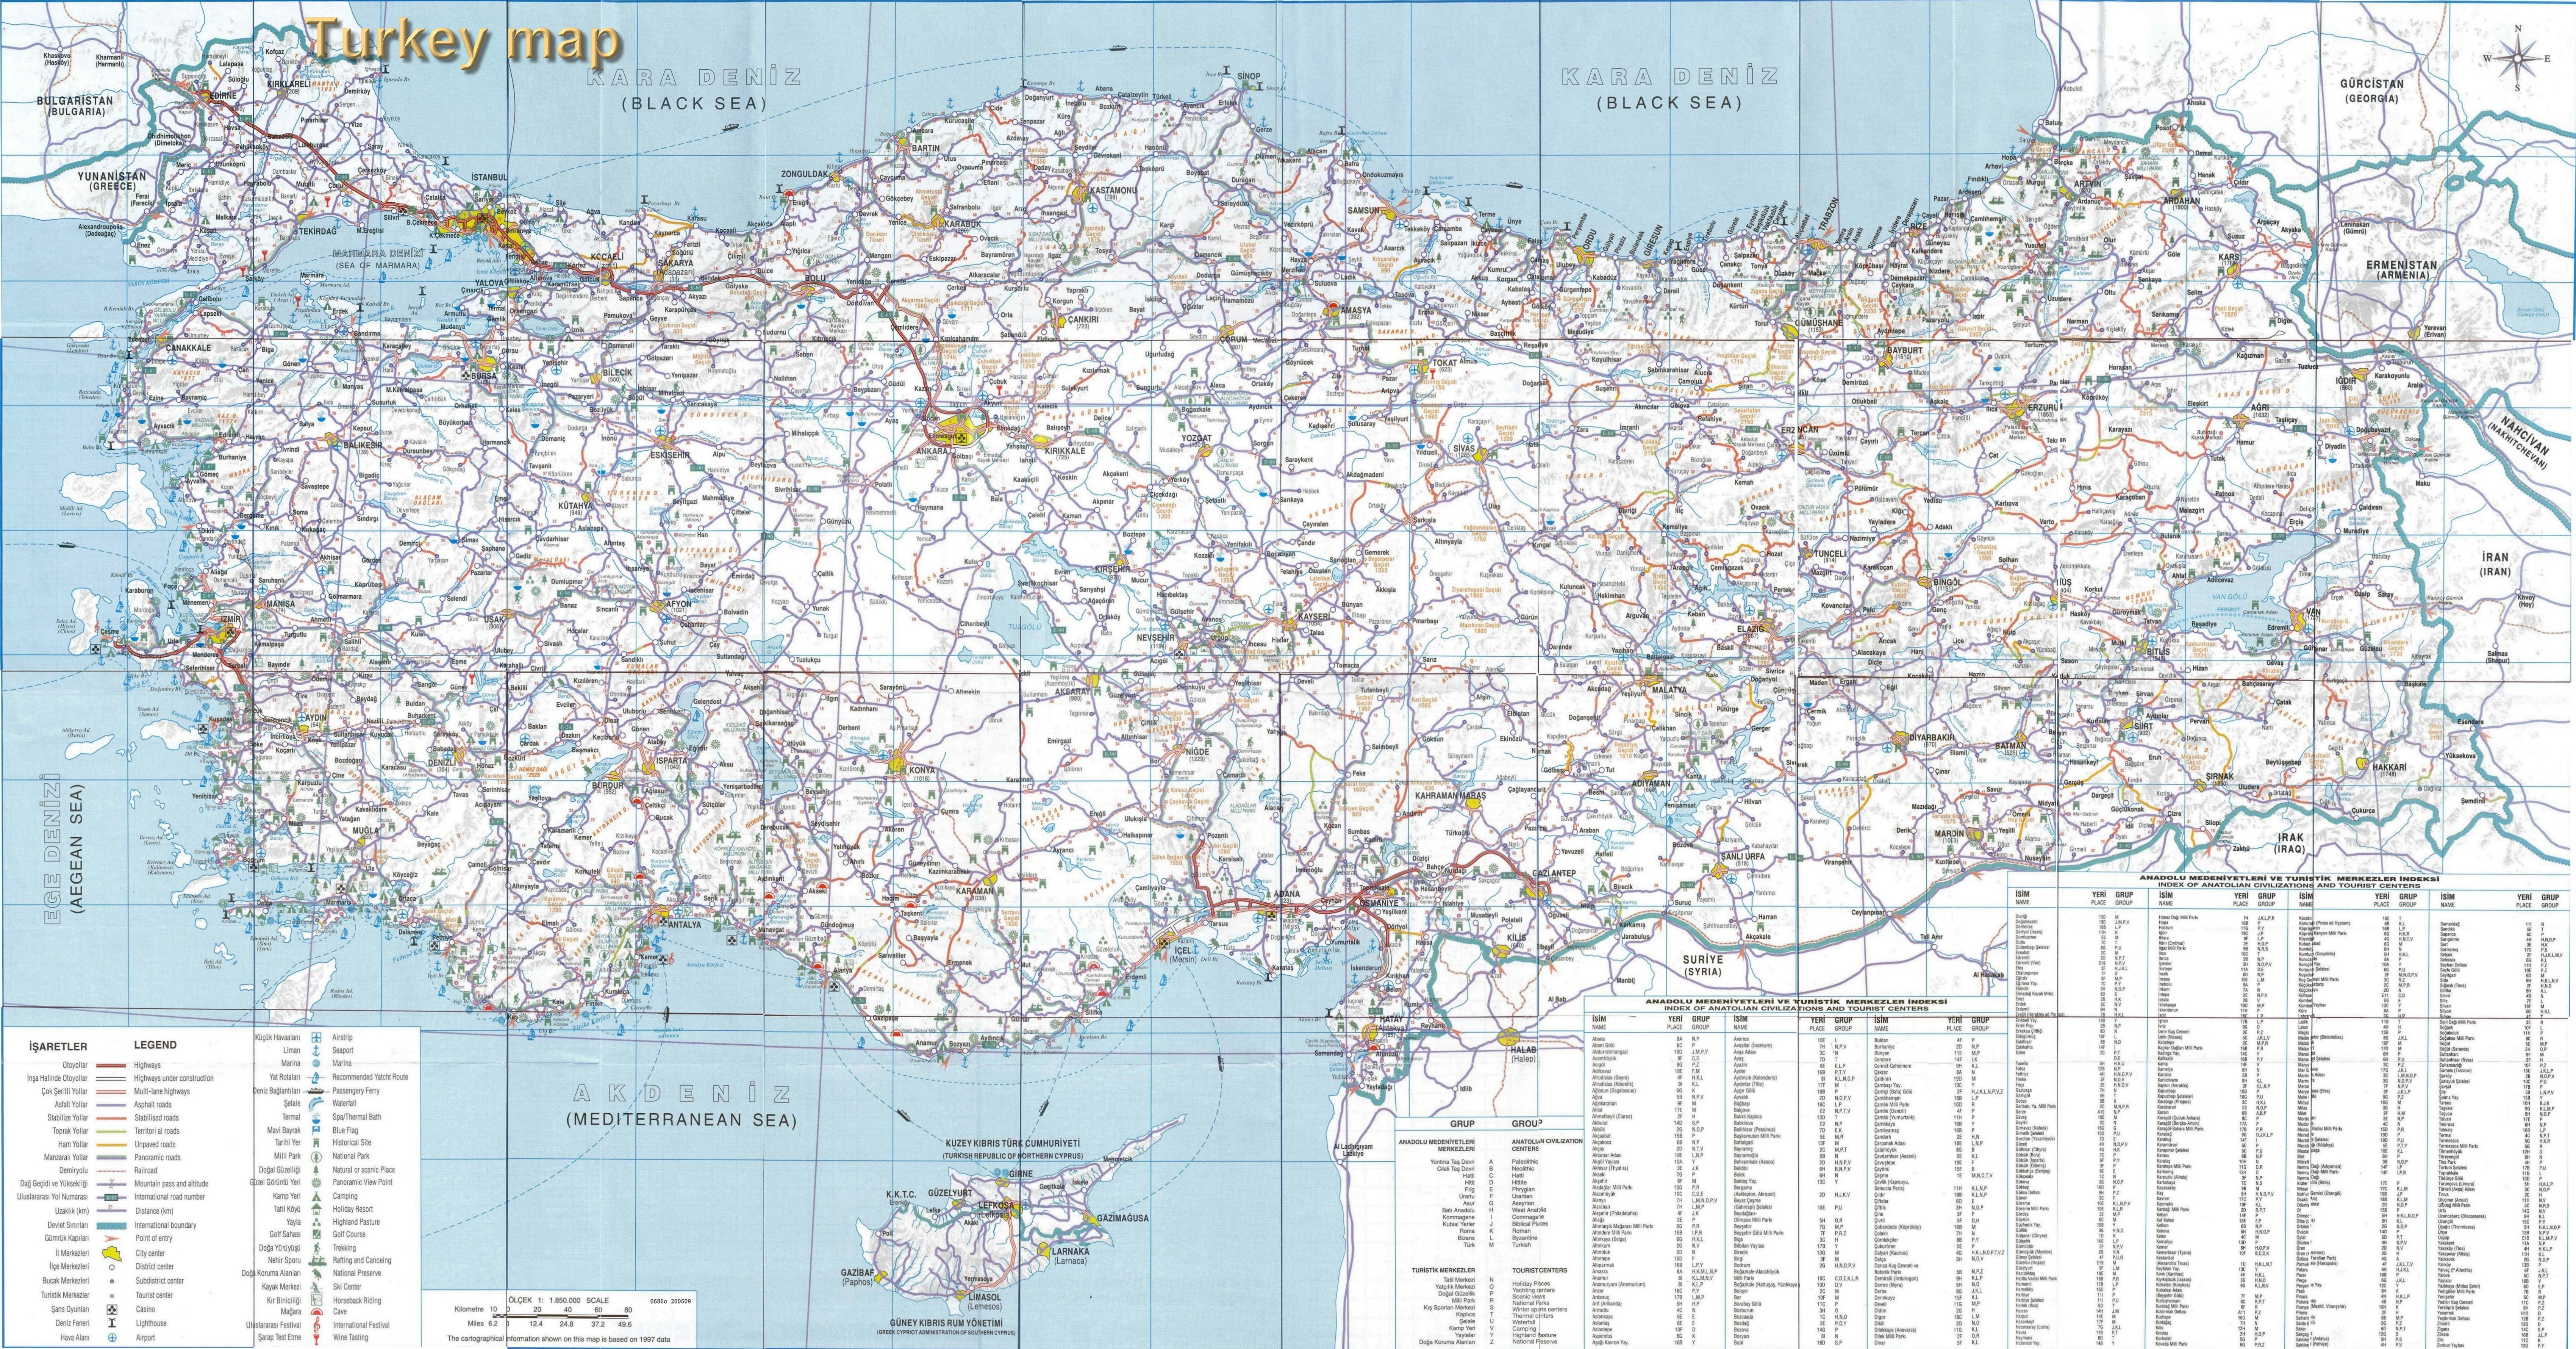 High resolution detailed road map of Turkey  Turkey high resolution additionally  moreover Turkey Road Map   All About Turkey likewise Turkey Maps   Perry Castañeda Map Collection   UT Liry Online additionally Turkey Road Maps   Detailed Travel Tourist Driving additionally ROADMAP   Free detailed roadmap of Turkey further Turkey Road Maps   Detailed Travel Tourist Driving also Detailed Clear Large Road Map of Turkey   Ezilon Maps besides Ozark Highlands Trail  Moccasin Springs to Cripple Turkey Road besides  additionally France and Turkey to work on new 'roadmap' to end Syrian war   The further Turkey Road Map together with Map Of Turkey Stock Photos   Map Of Turkey Stock Images   Page 2 together with Turkey Trainer Roadmap   Time To Farm Trainers    The Walking Dead moreover Turkey Road Maps   Detailed Travel Tourist Driving furthermore Turkey Road Maps   Detailed Travel Tourist Driving. on turkey road map